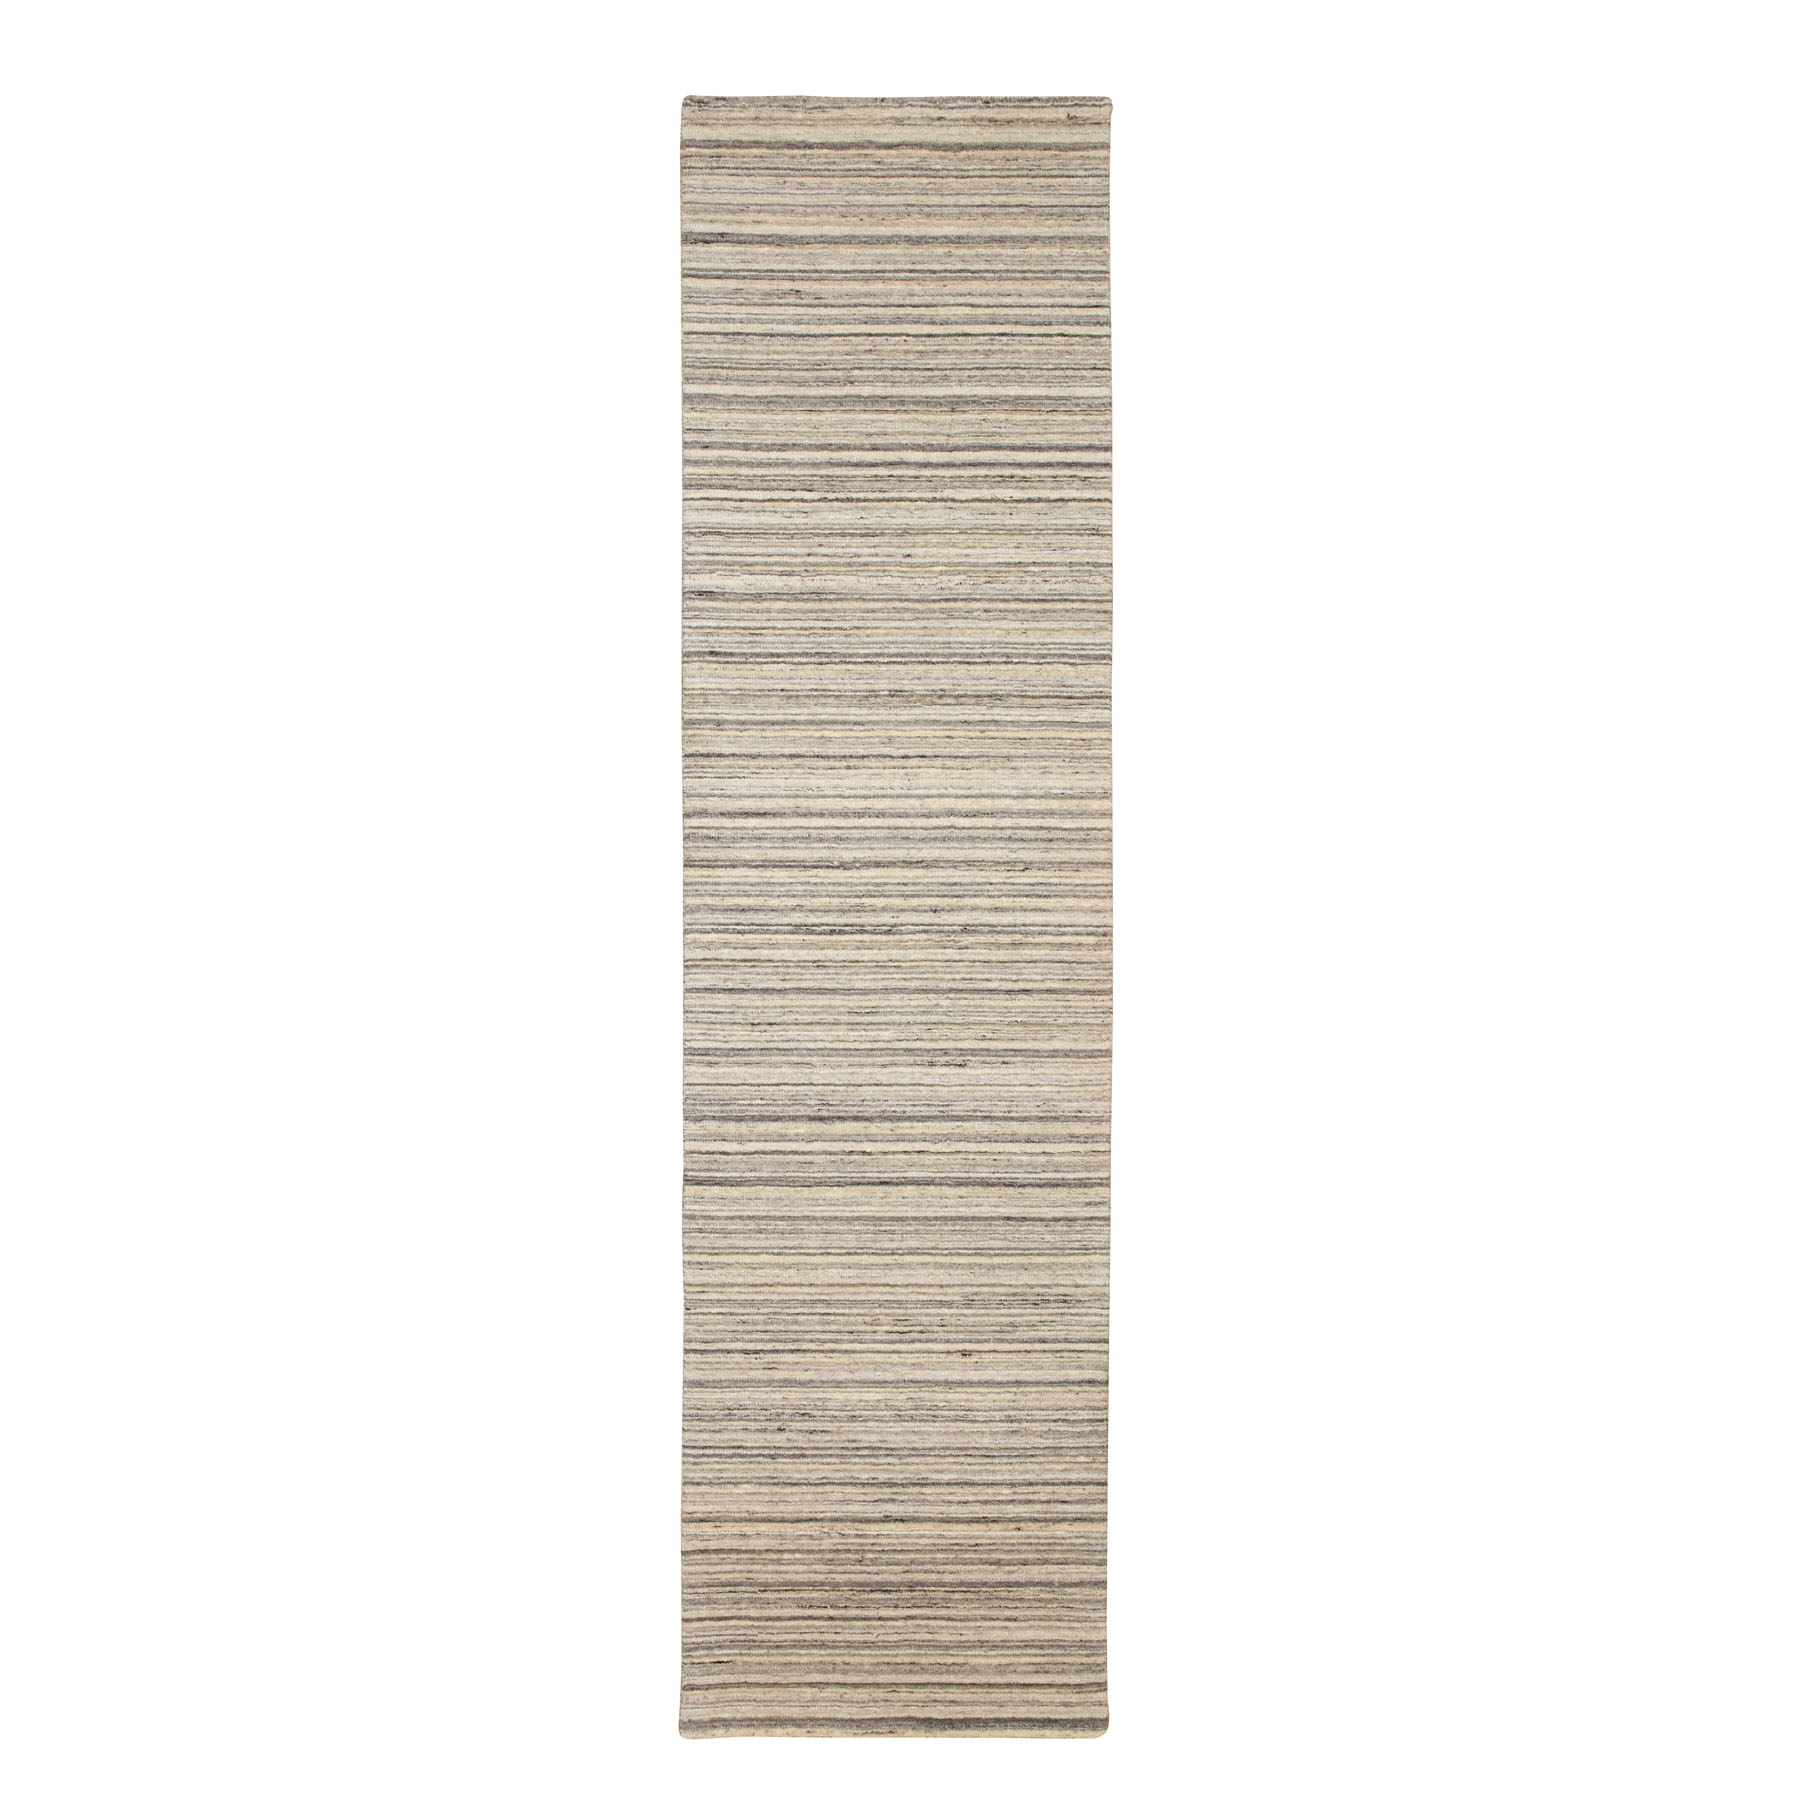 Mid Century Modern Collection Hand Loomed Beige Rug No: 1116764